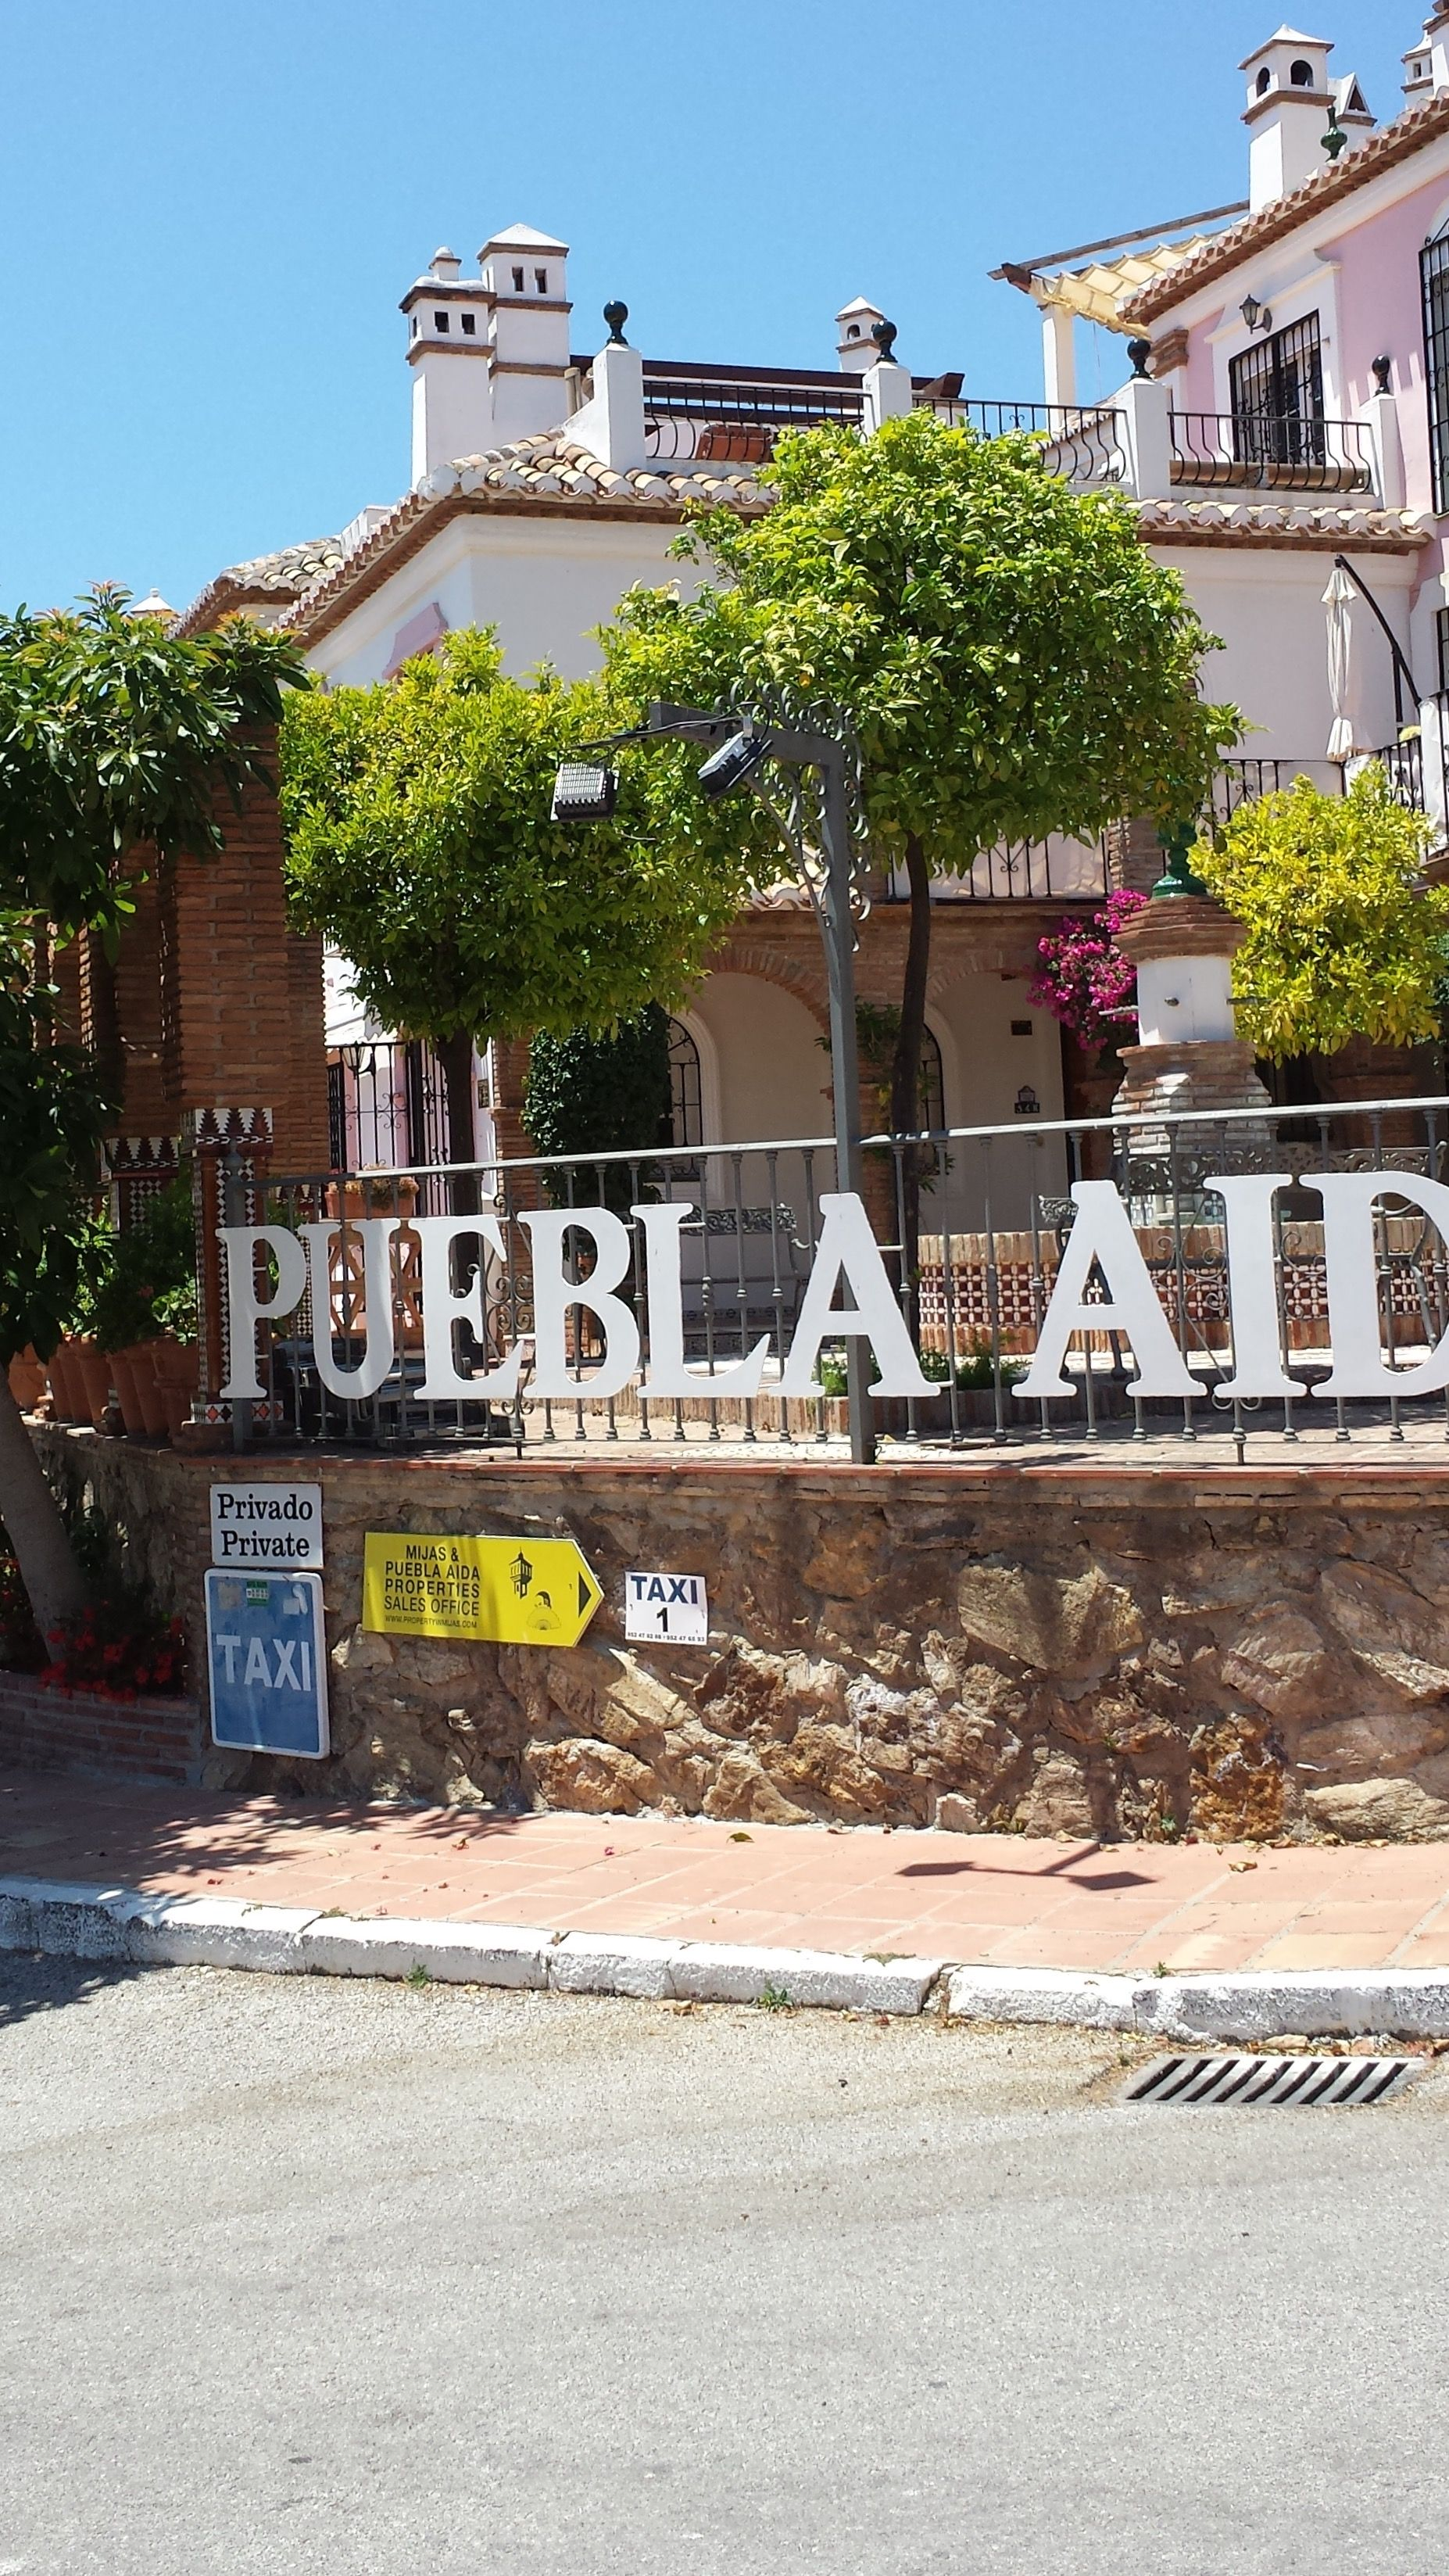 Pin by Ruth A on Puebla Aida | House styles, Puebla, Mansions